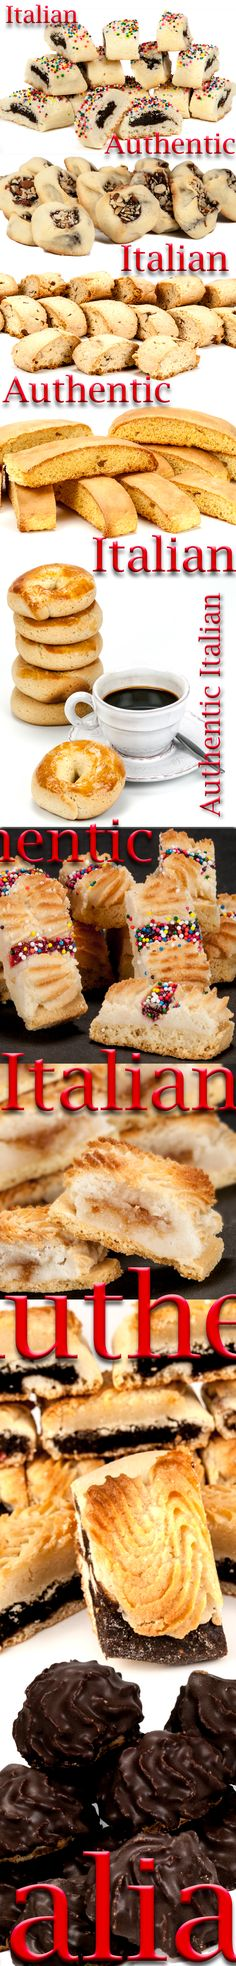 Cookies from Viso's Authentic Italian Desserts